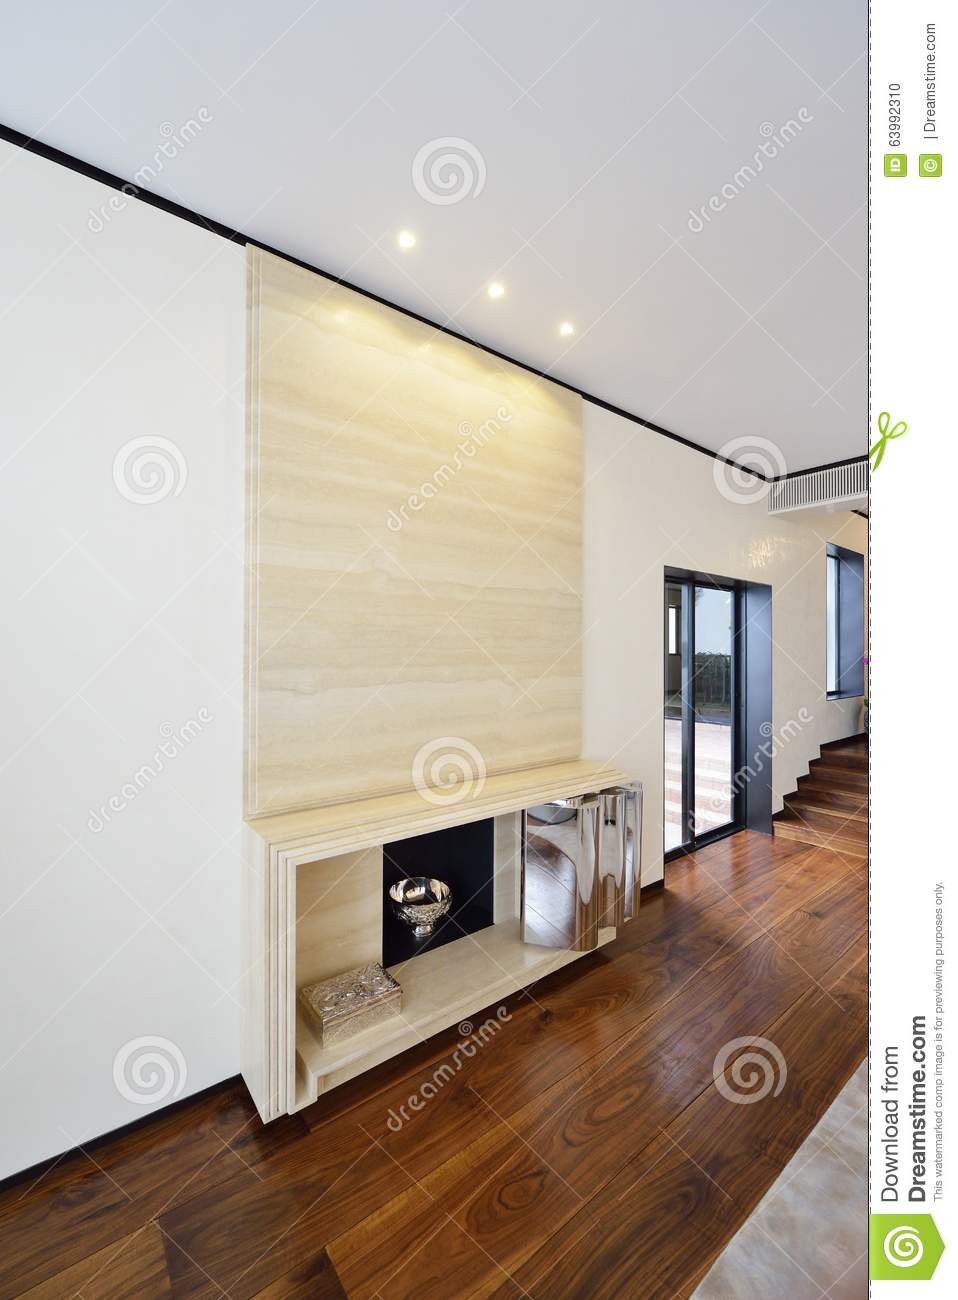 Modern Spacious Lounge Or Living Room Interior With Monochromatic Elegant  Furniture And Large Bright Windows